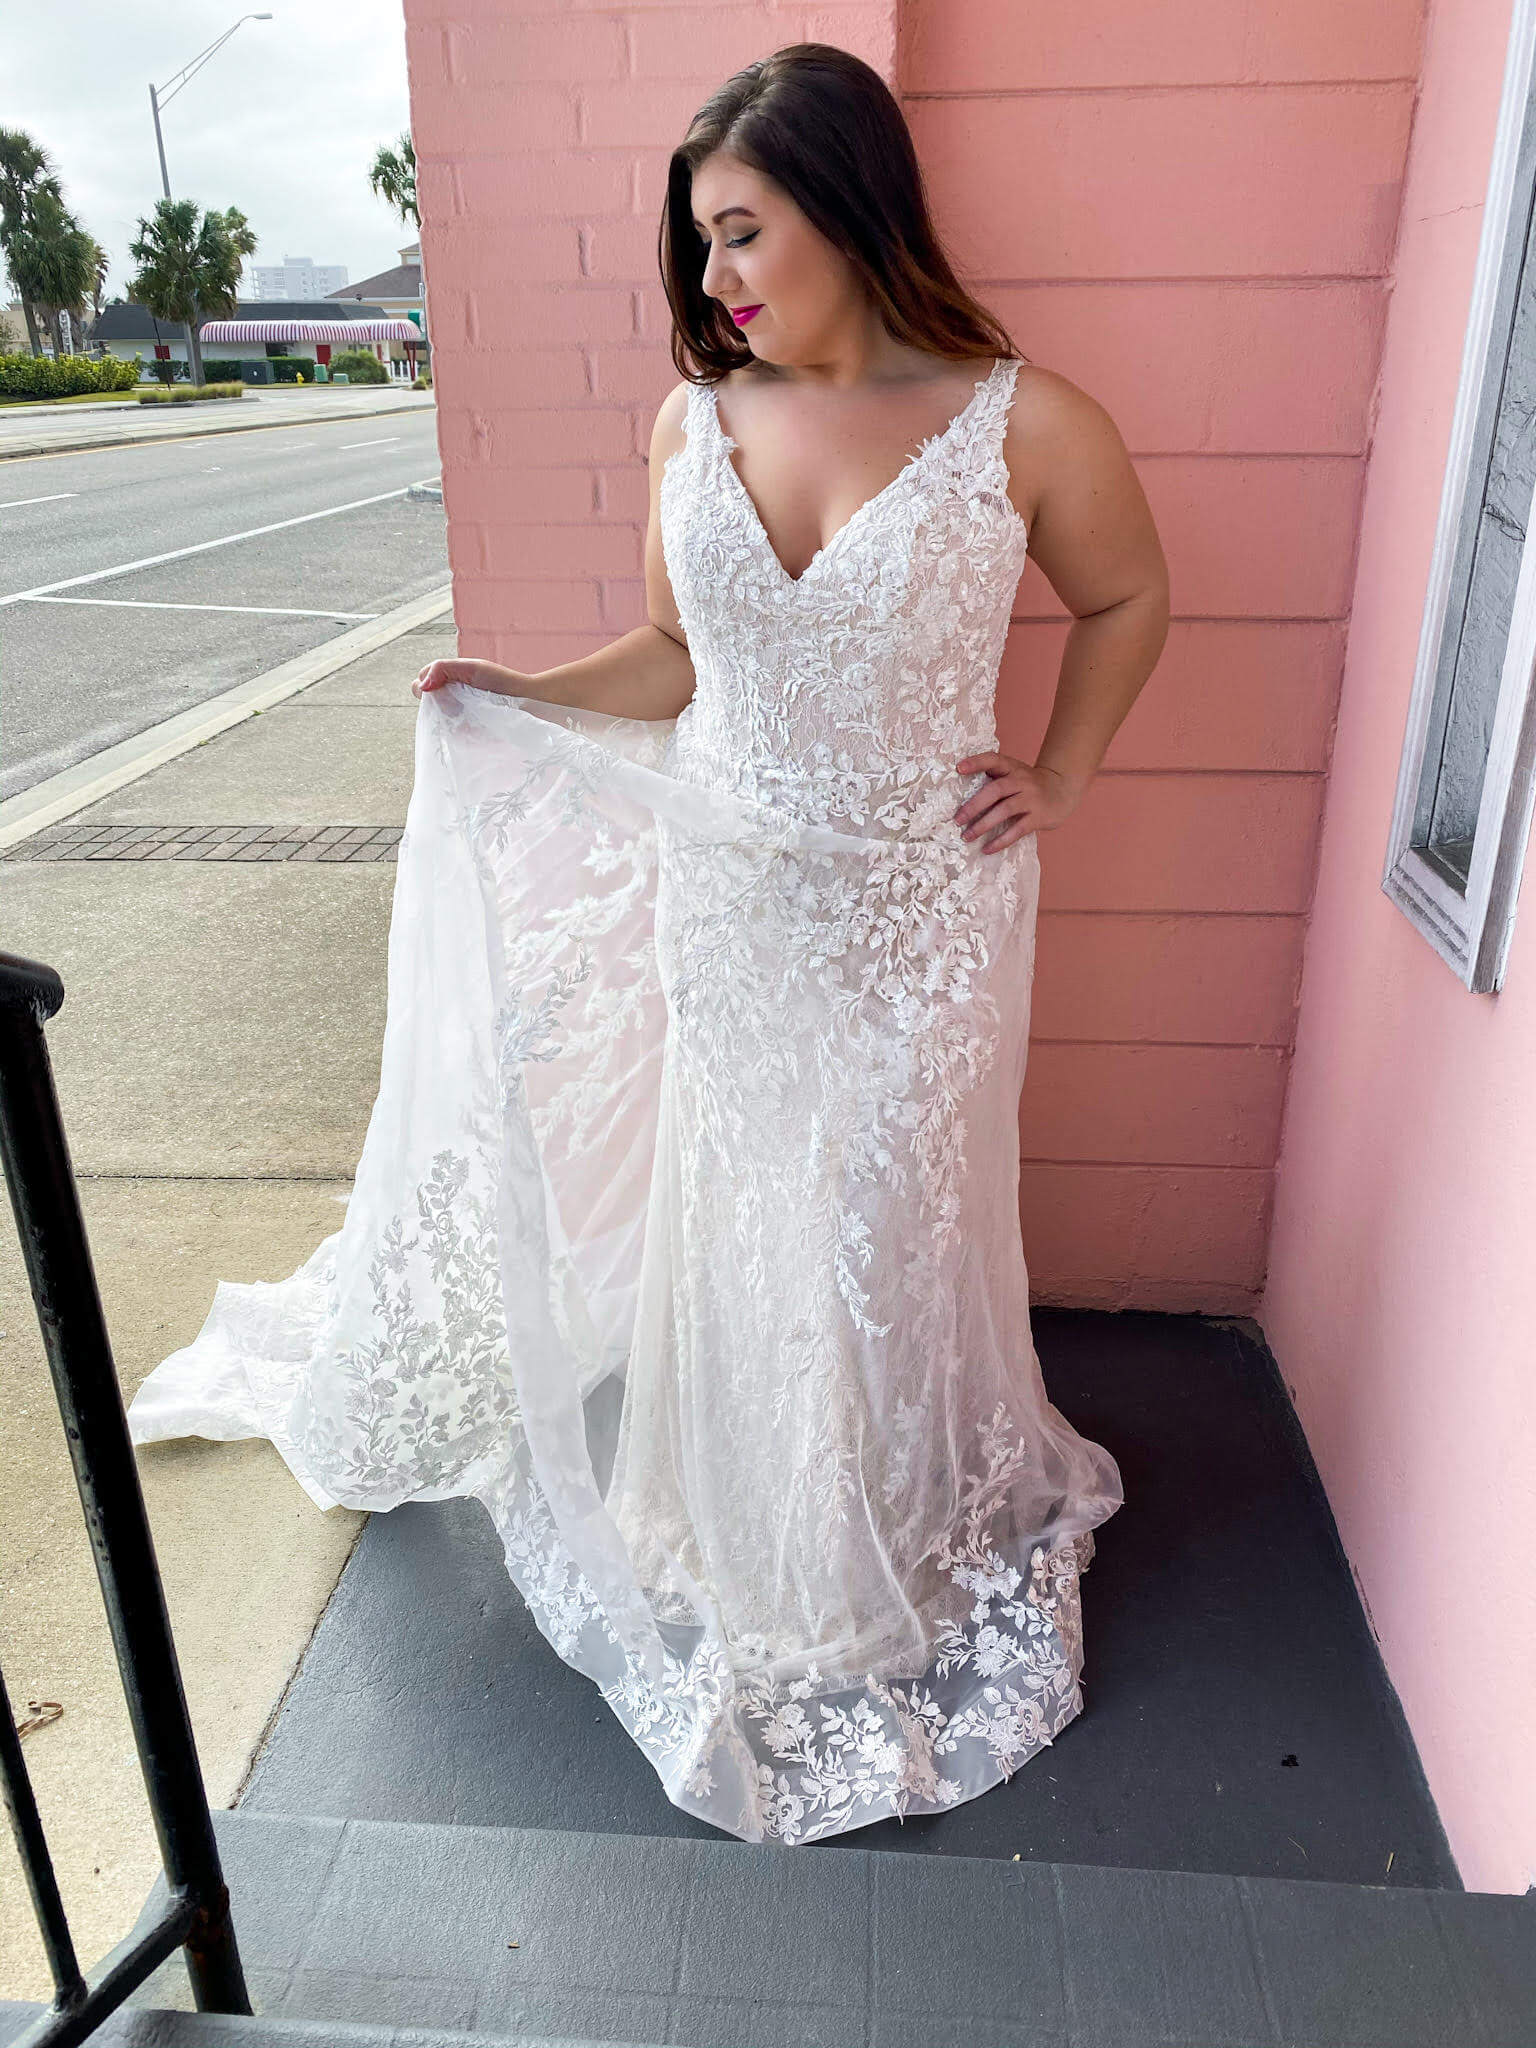 Plus size wedding dress options